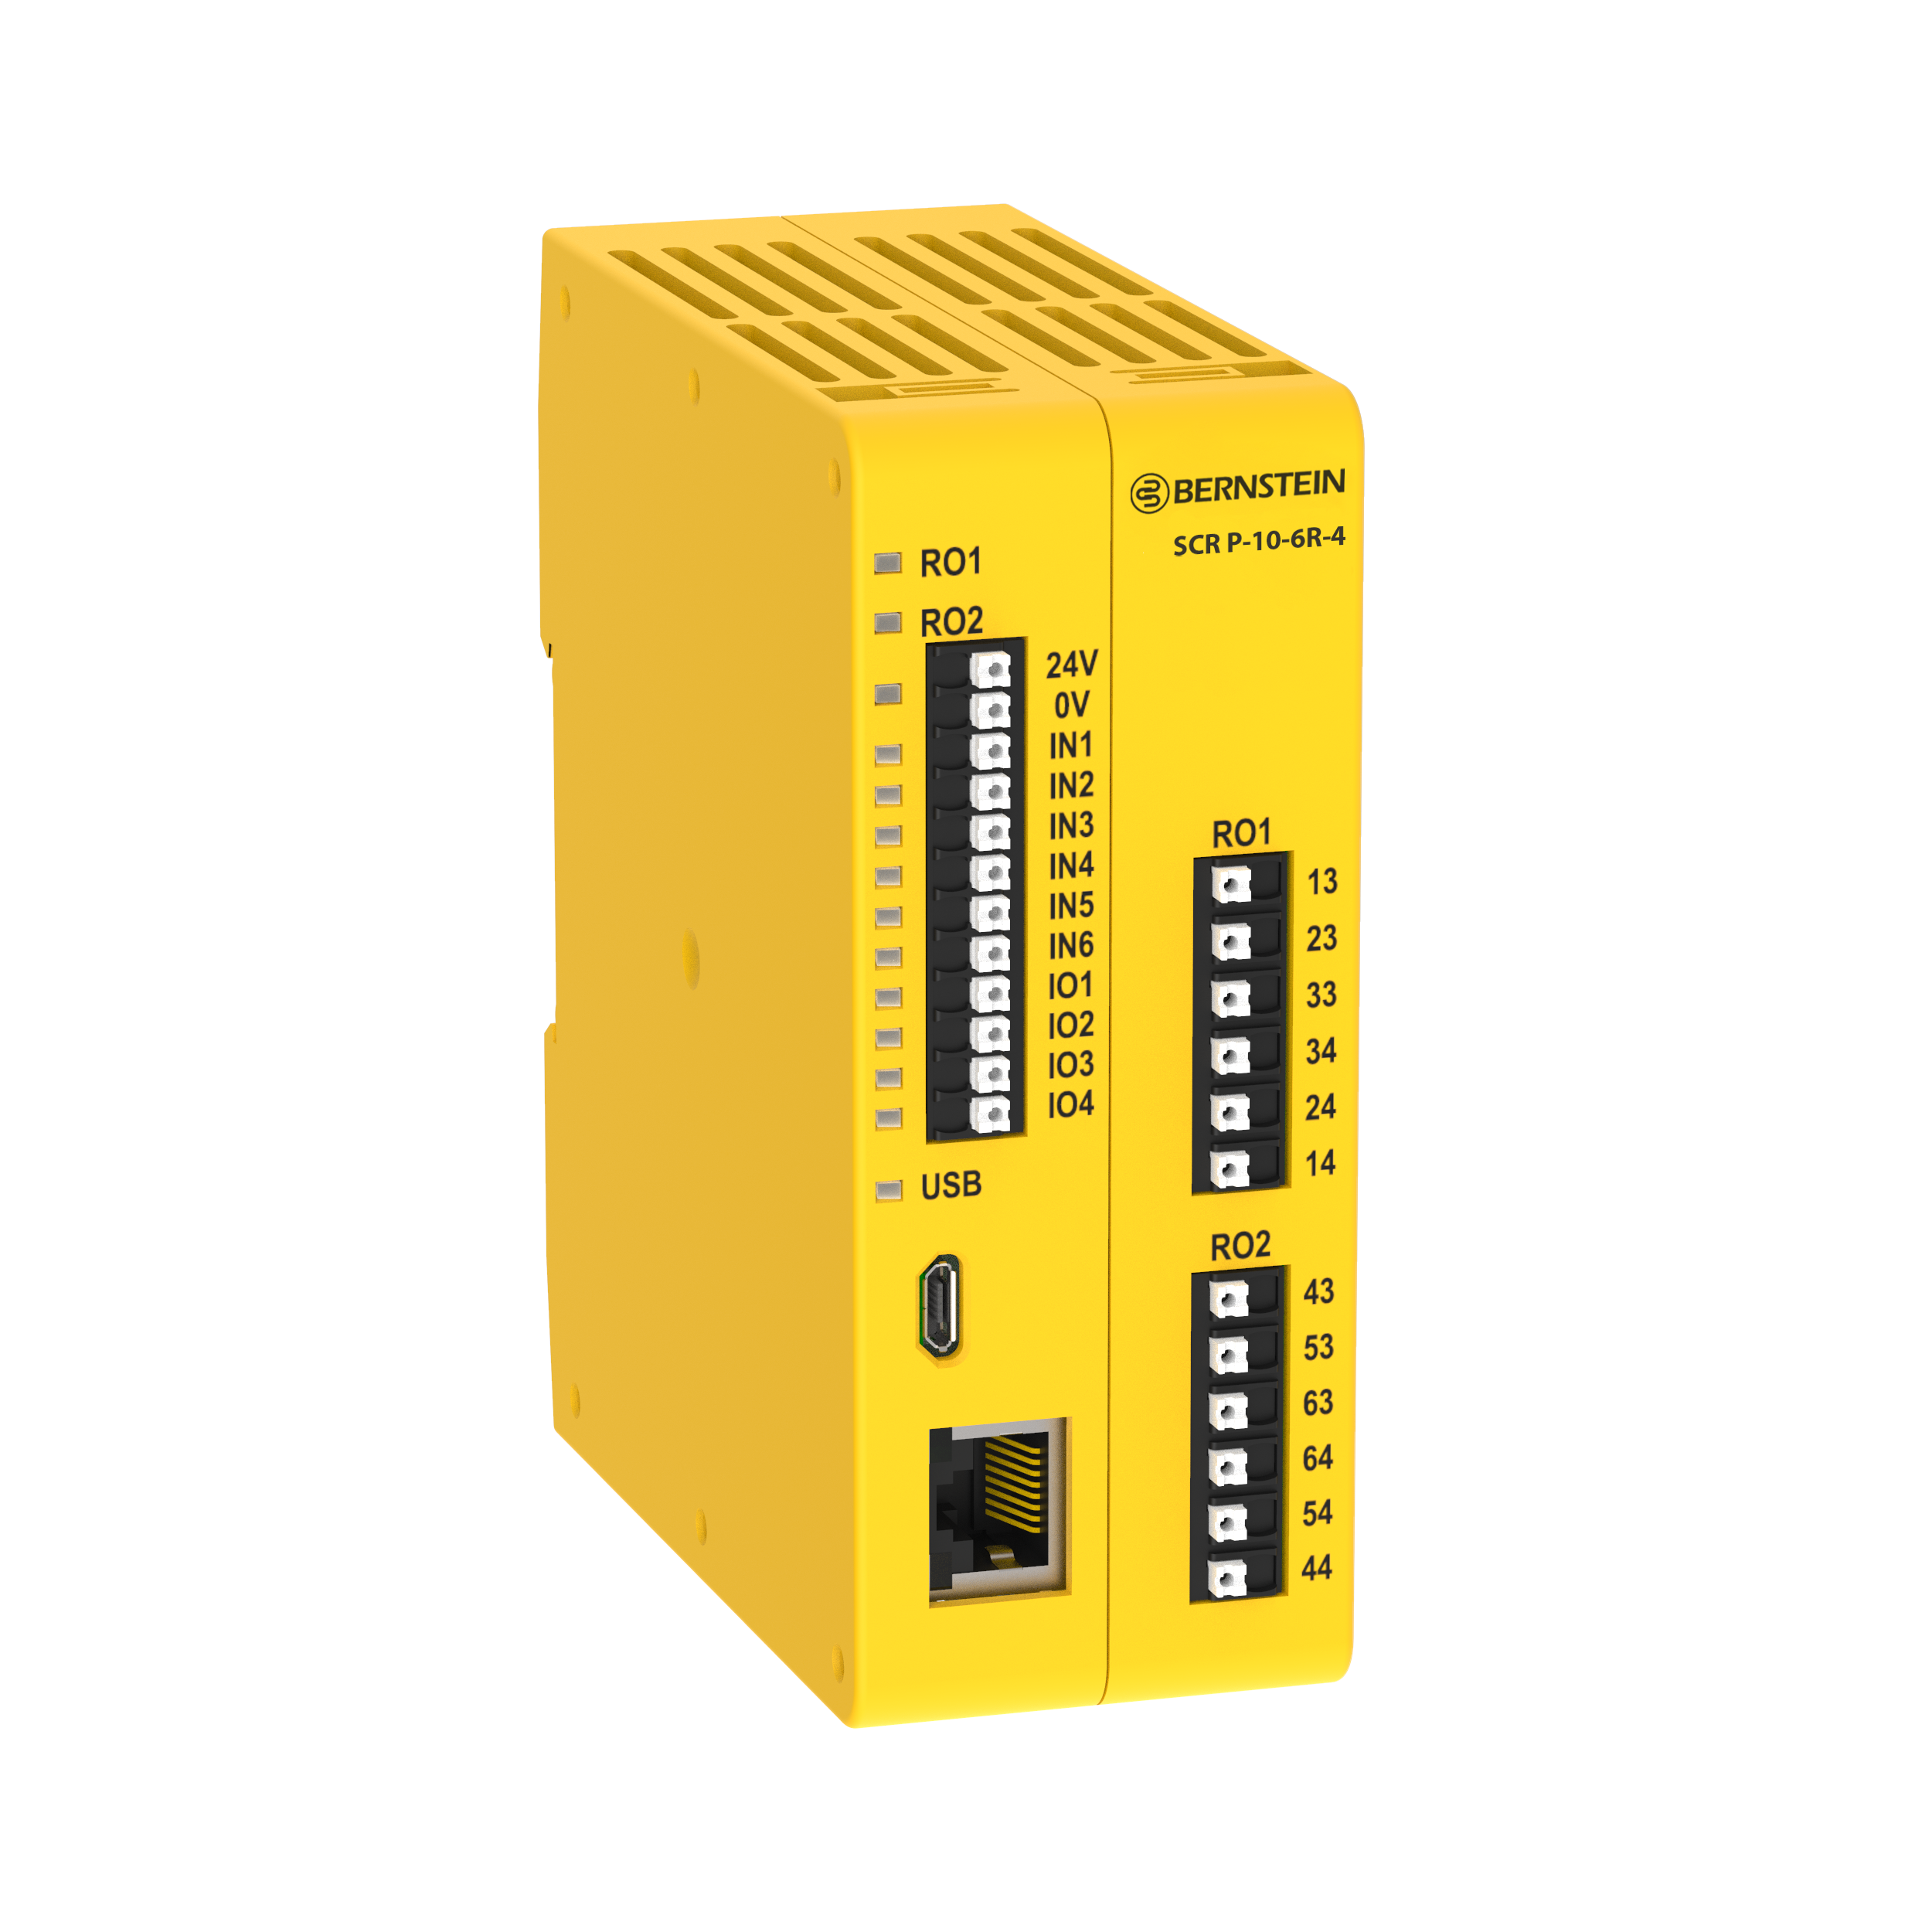 SCR P - Programmable Safety Controller